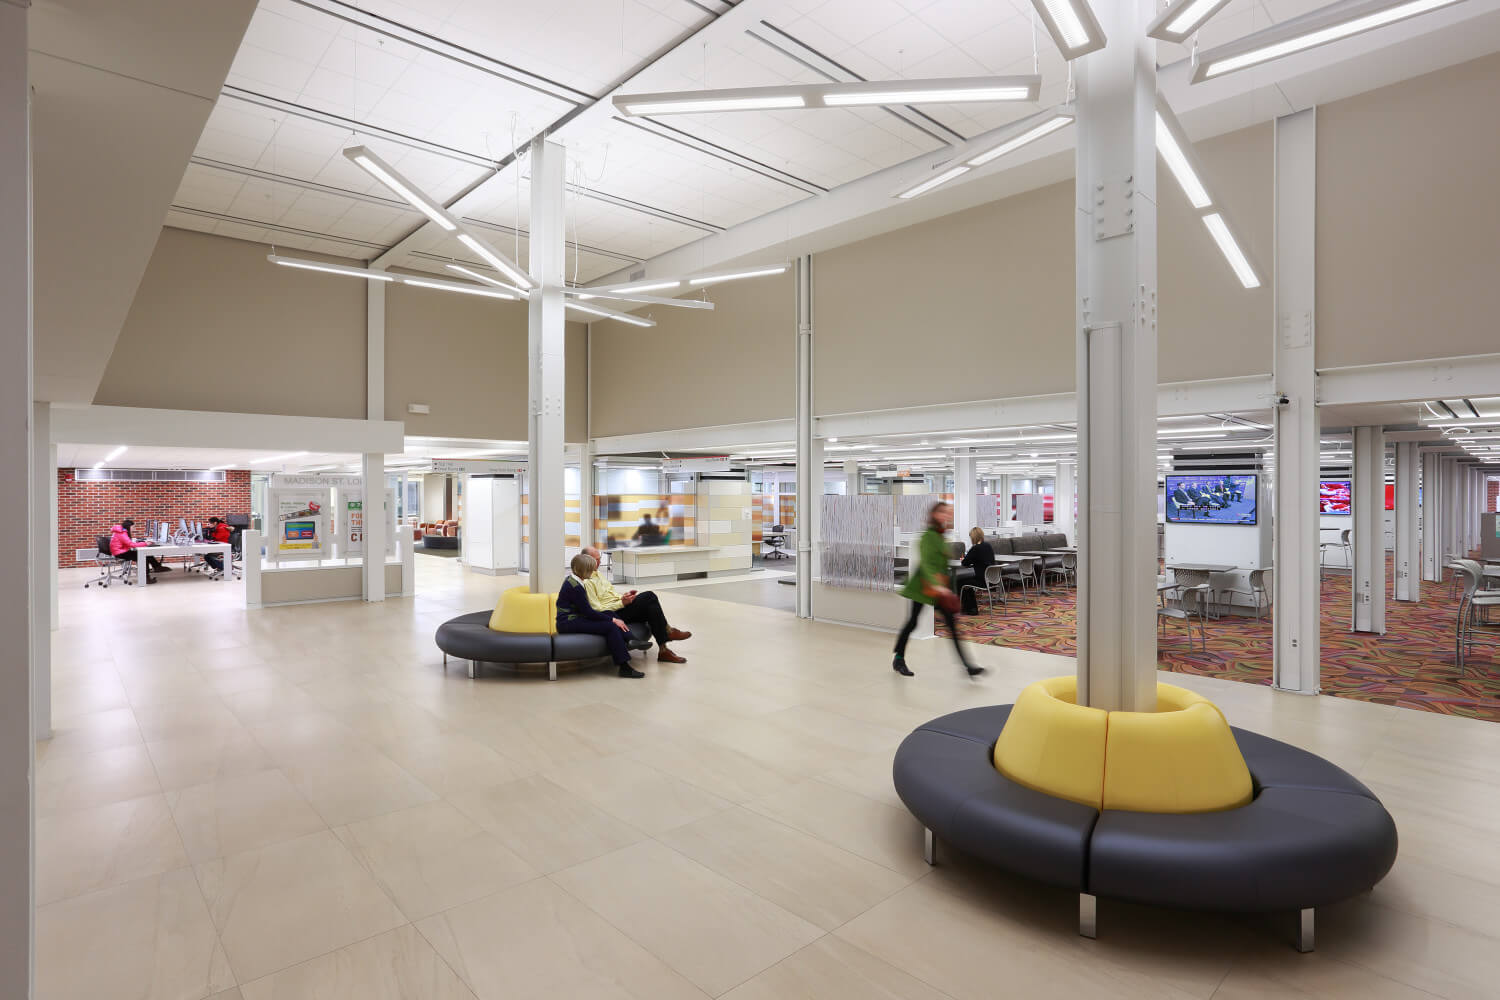 cmba-architects-portfolio-library-Learning-Commons-02